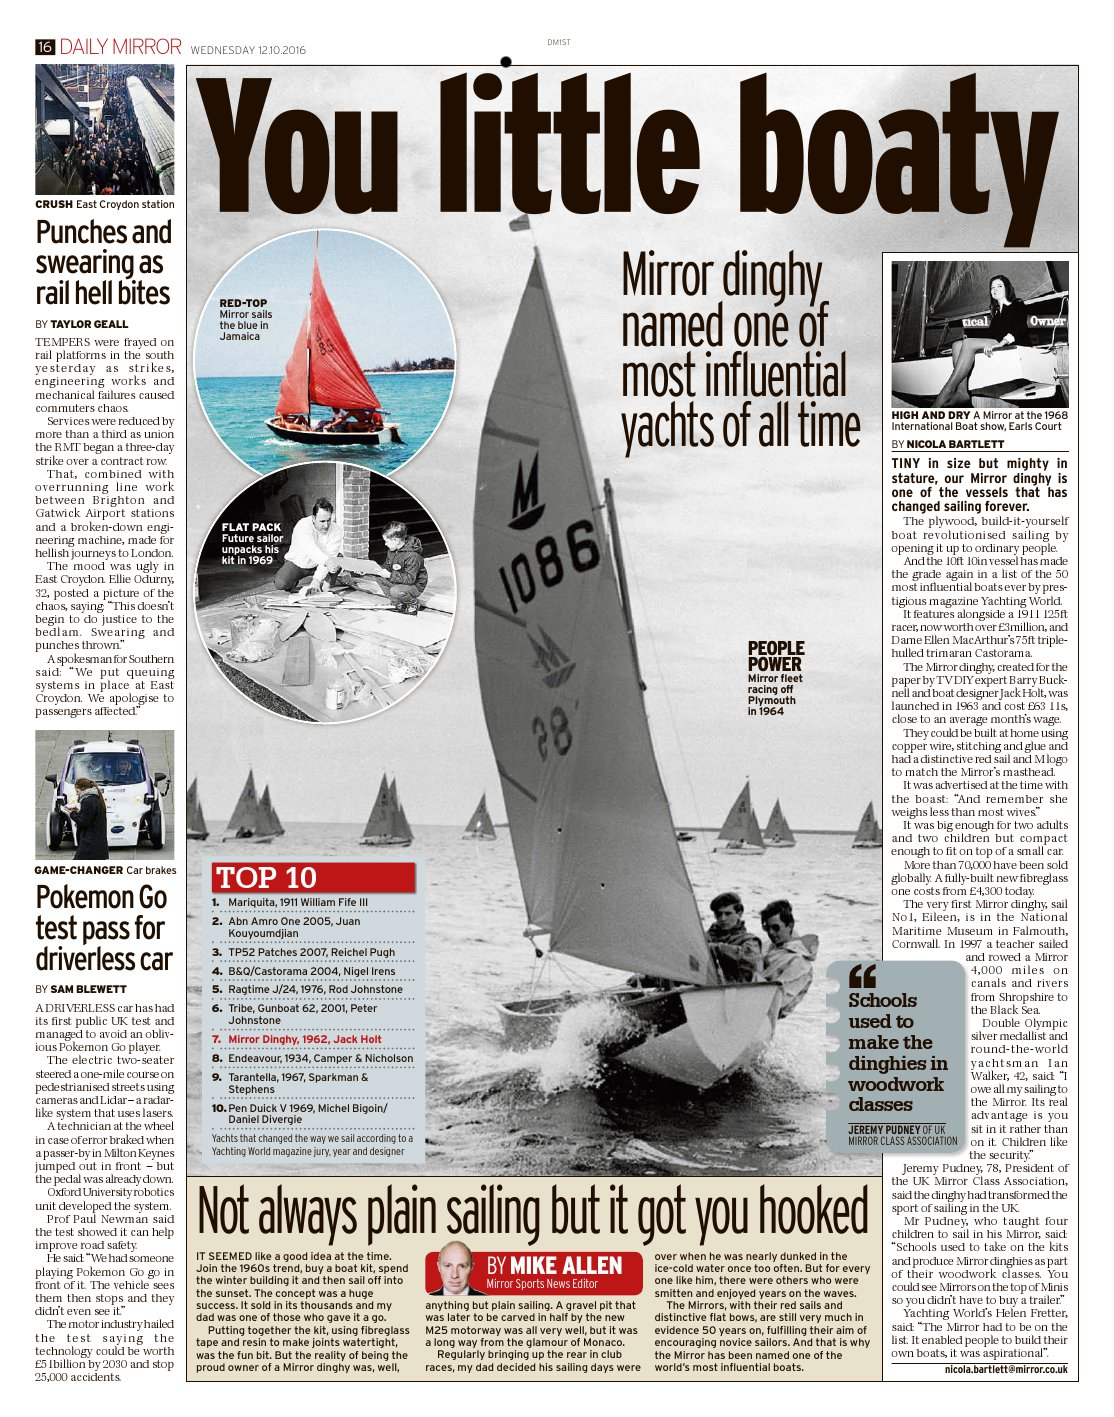 Page 16 of the Daily Mirror with article and photos of the Mirror Dinghy